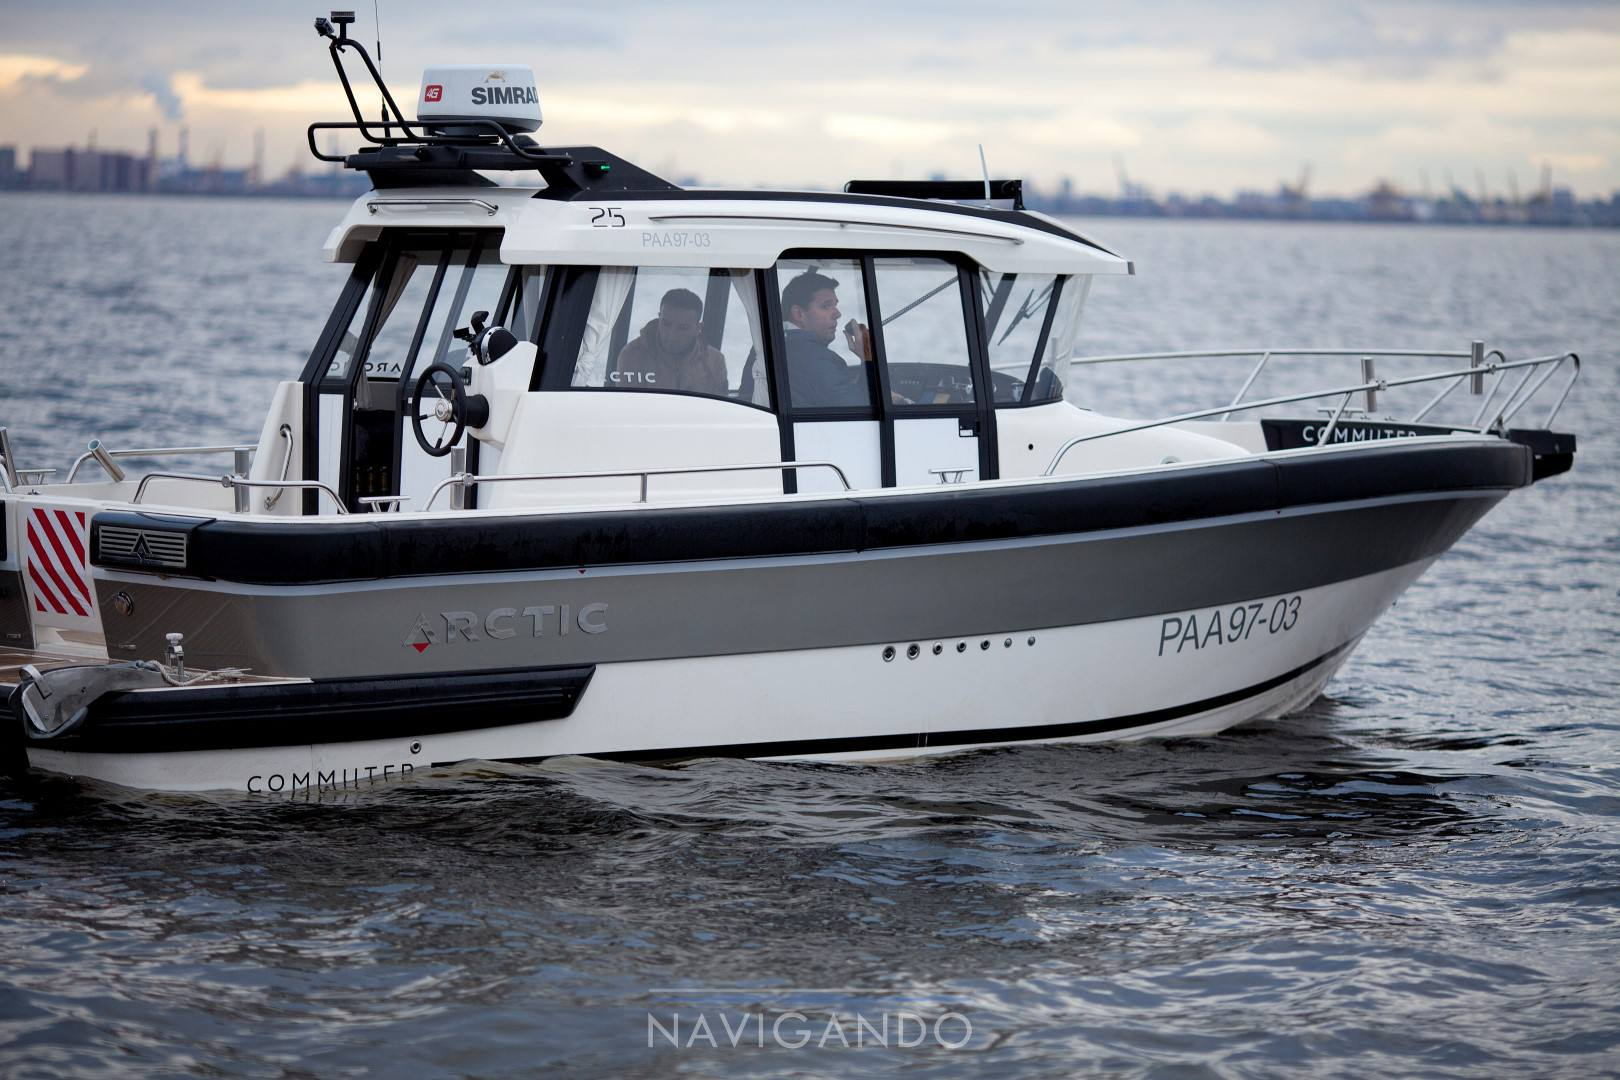 Arctic Commuter 25 Motor boat used for sale